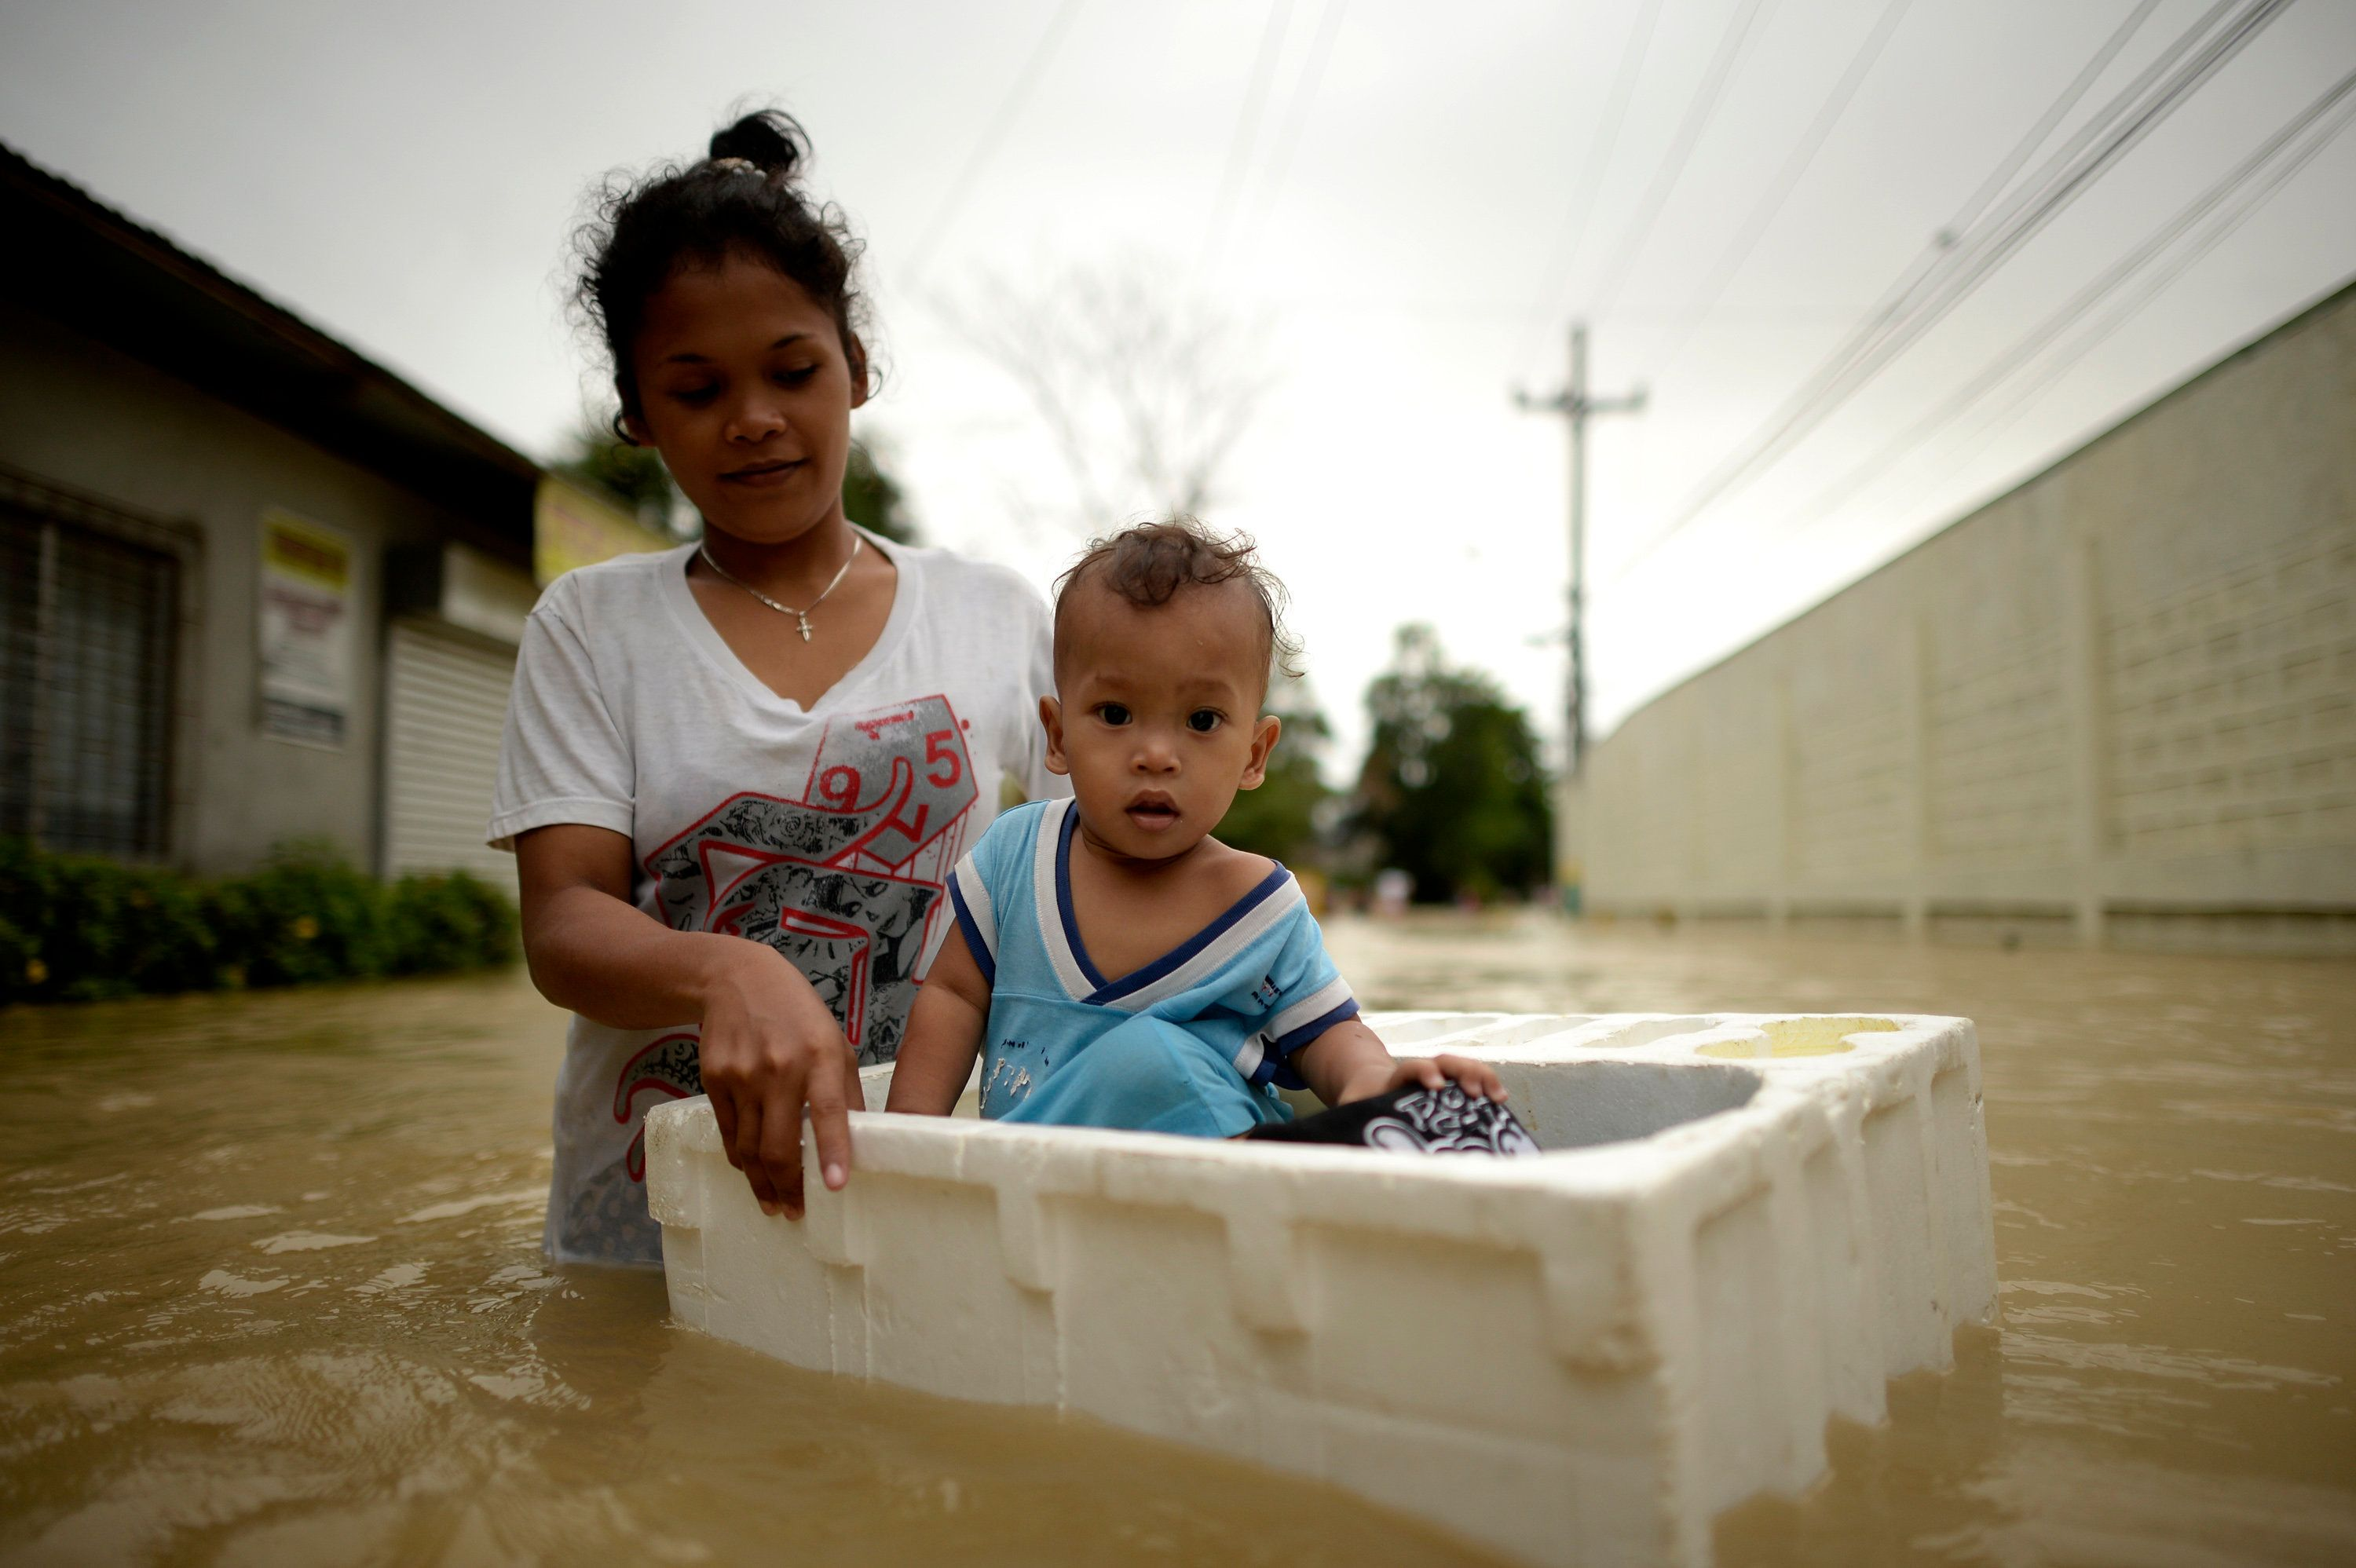 Lovelyn Cesar, 22, carries her one year old baby Matthew  as she cross a flooded street in Calumpit, Bulacan, suburban Manila on December 20, 2015. The death toll from two storms which battered the Philippines rose to 45 as several towns remained under water and rain kept falling in northern regions, disaster monitoring officials said. The rain was caused by a cold front, dragged into the country by Typhoon Melor and Tropical Depression Onyok which hit the Philippines in succession last week.  AFP PHOTO / NOEL CELIS / AFP / NOEL CELIS        (Photo credit should read NOEL CELIS/AFP/Getty Images)